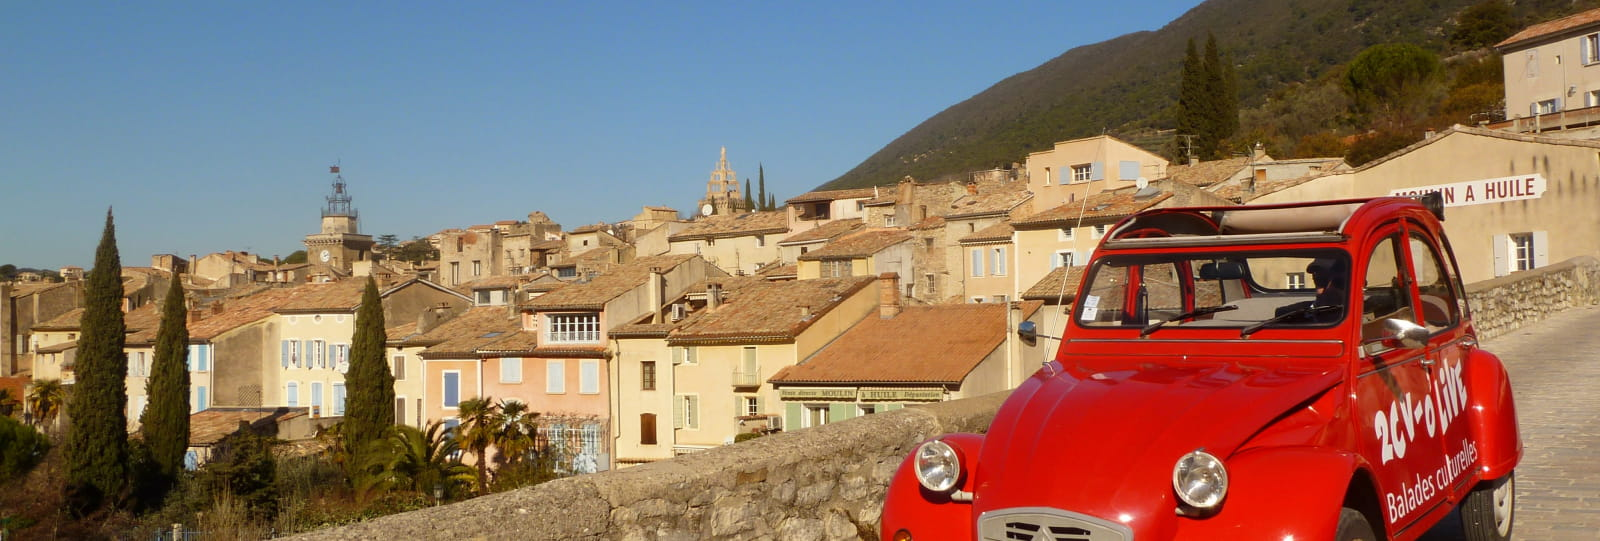 Cultural tour in 2cv: Garde-Grosse's tour